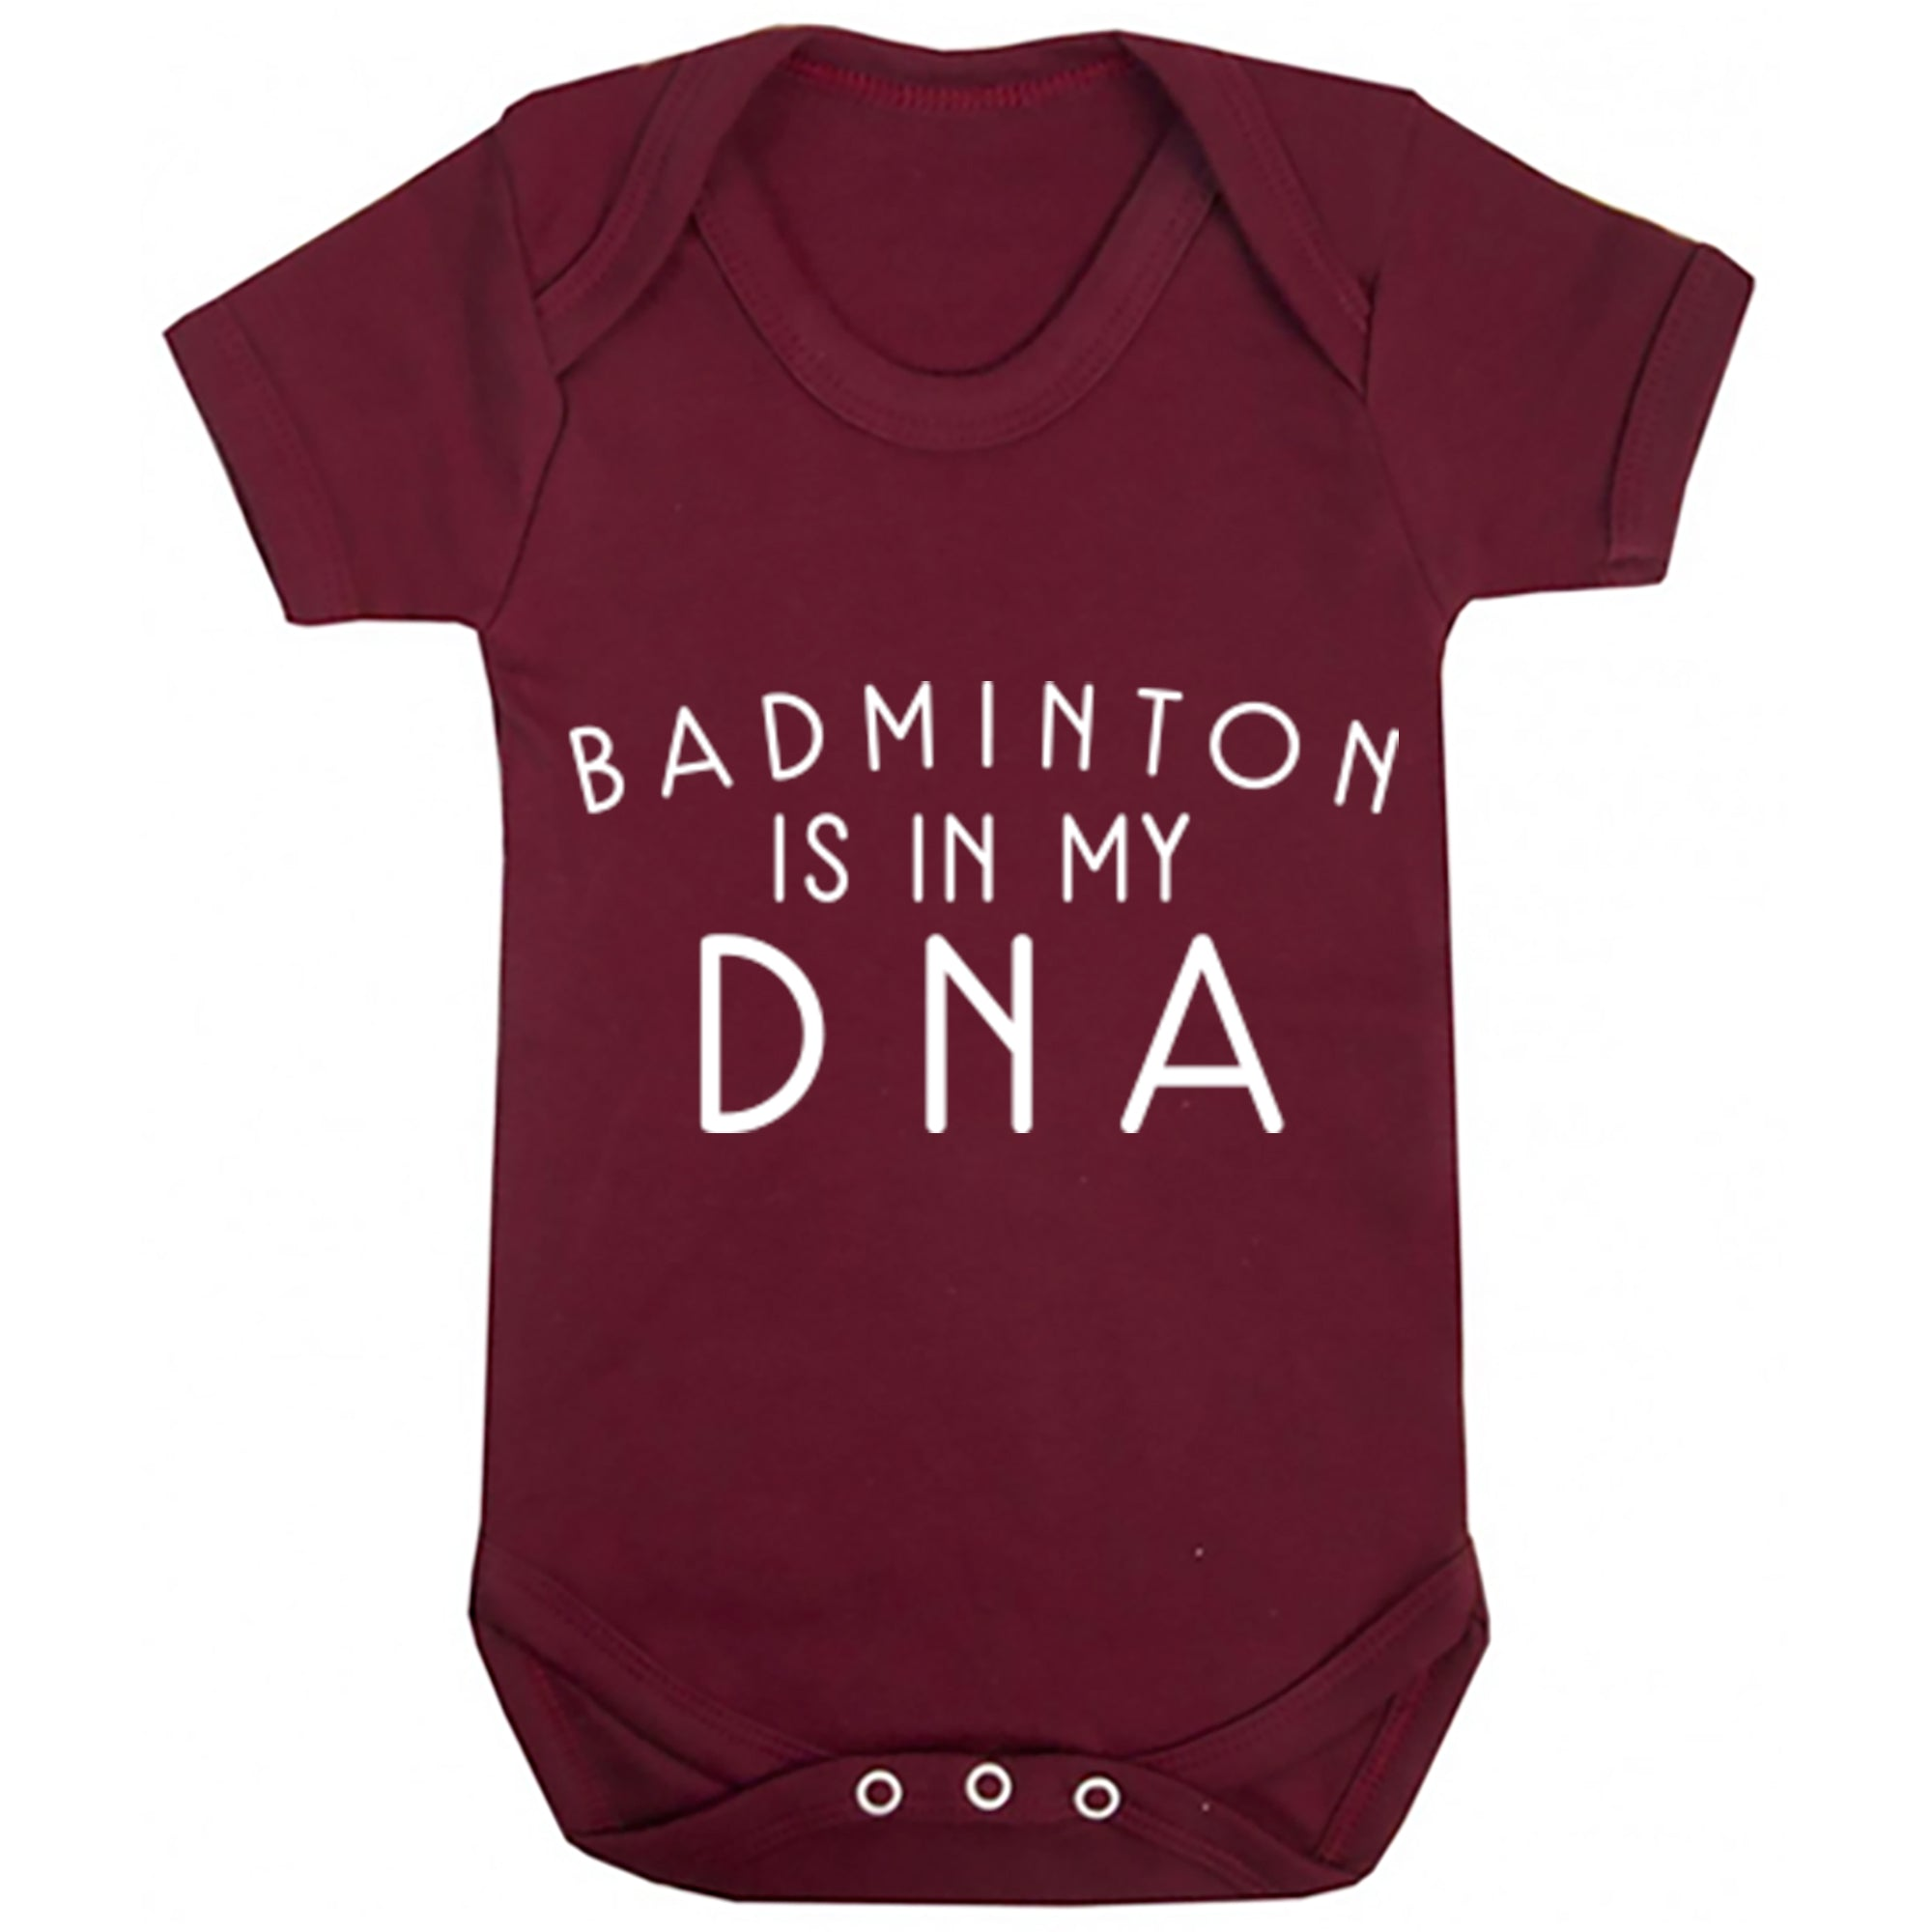 Badminton Is In My DNA Baby Vest S0691 - Illustrated Identity Ltd.